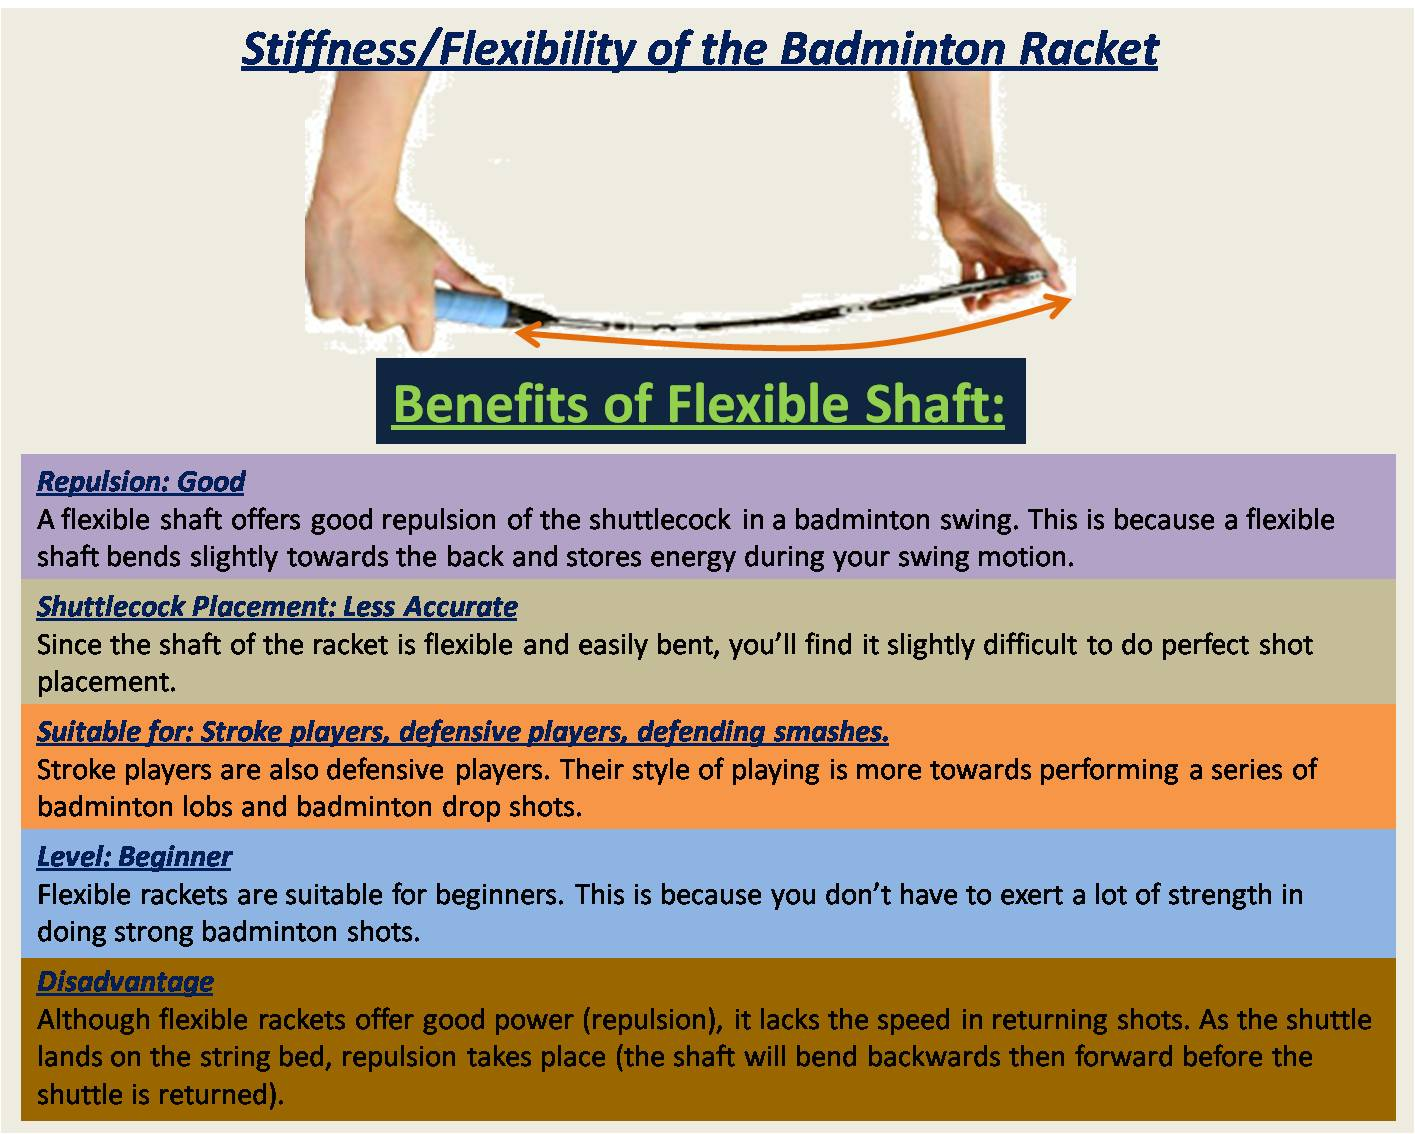 Flexibility of the Badminton Racket